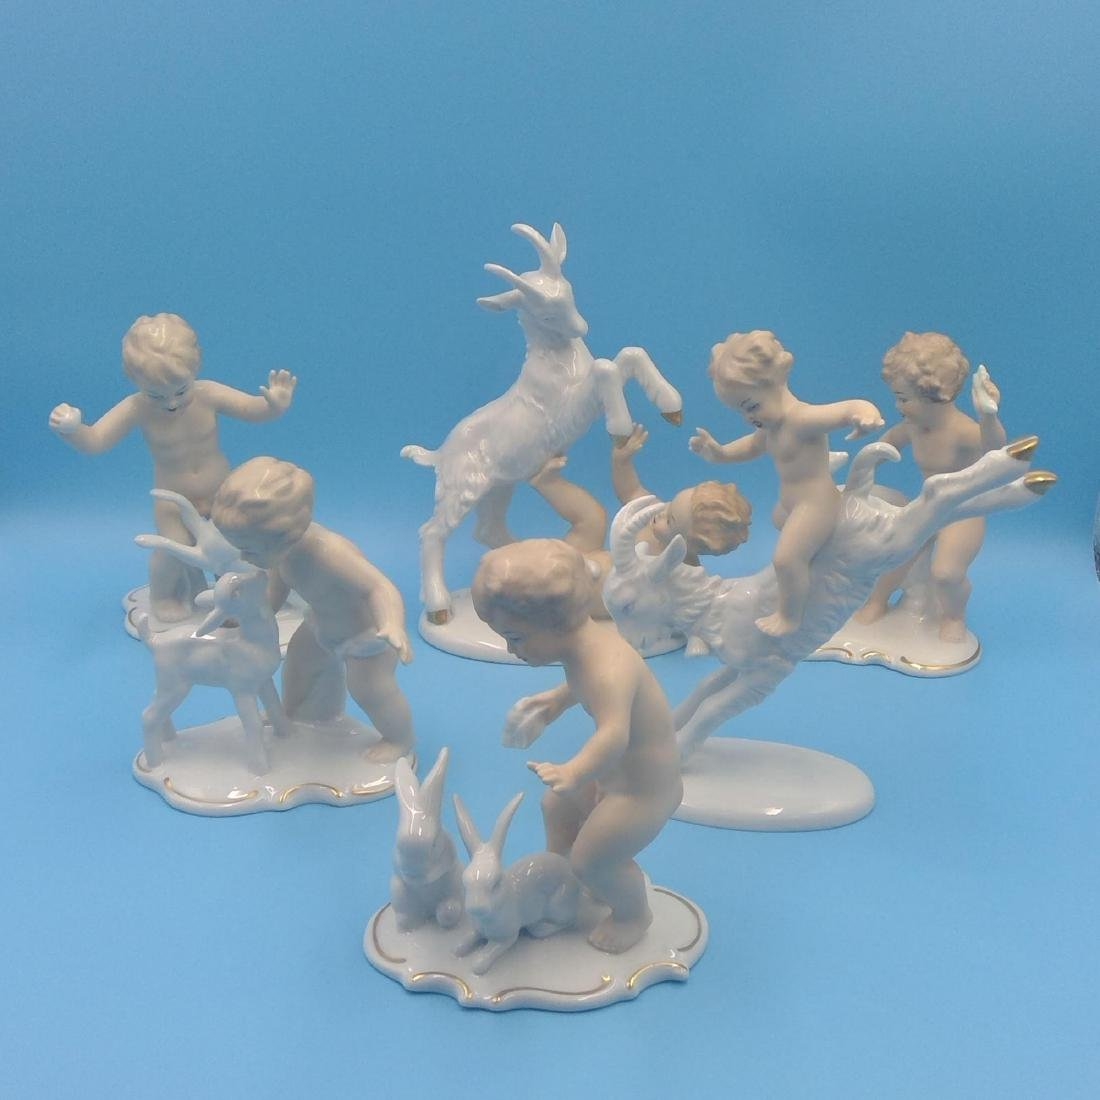 GROUP OF 6 WALLENDORF CHERUB FIGURINES